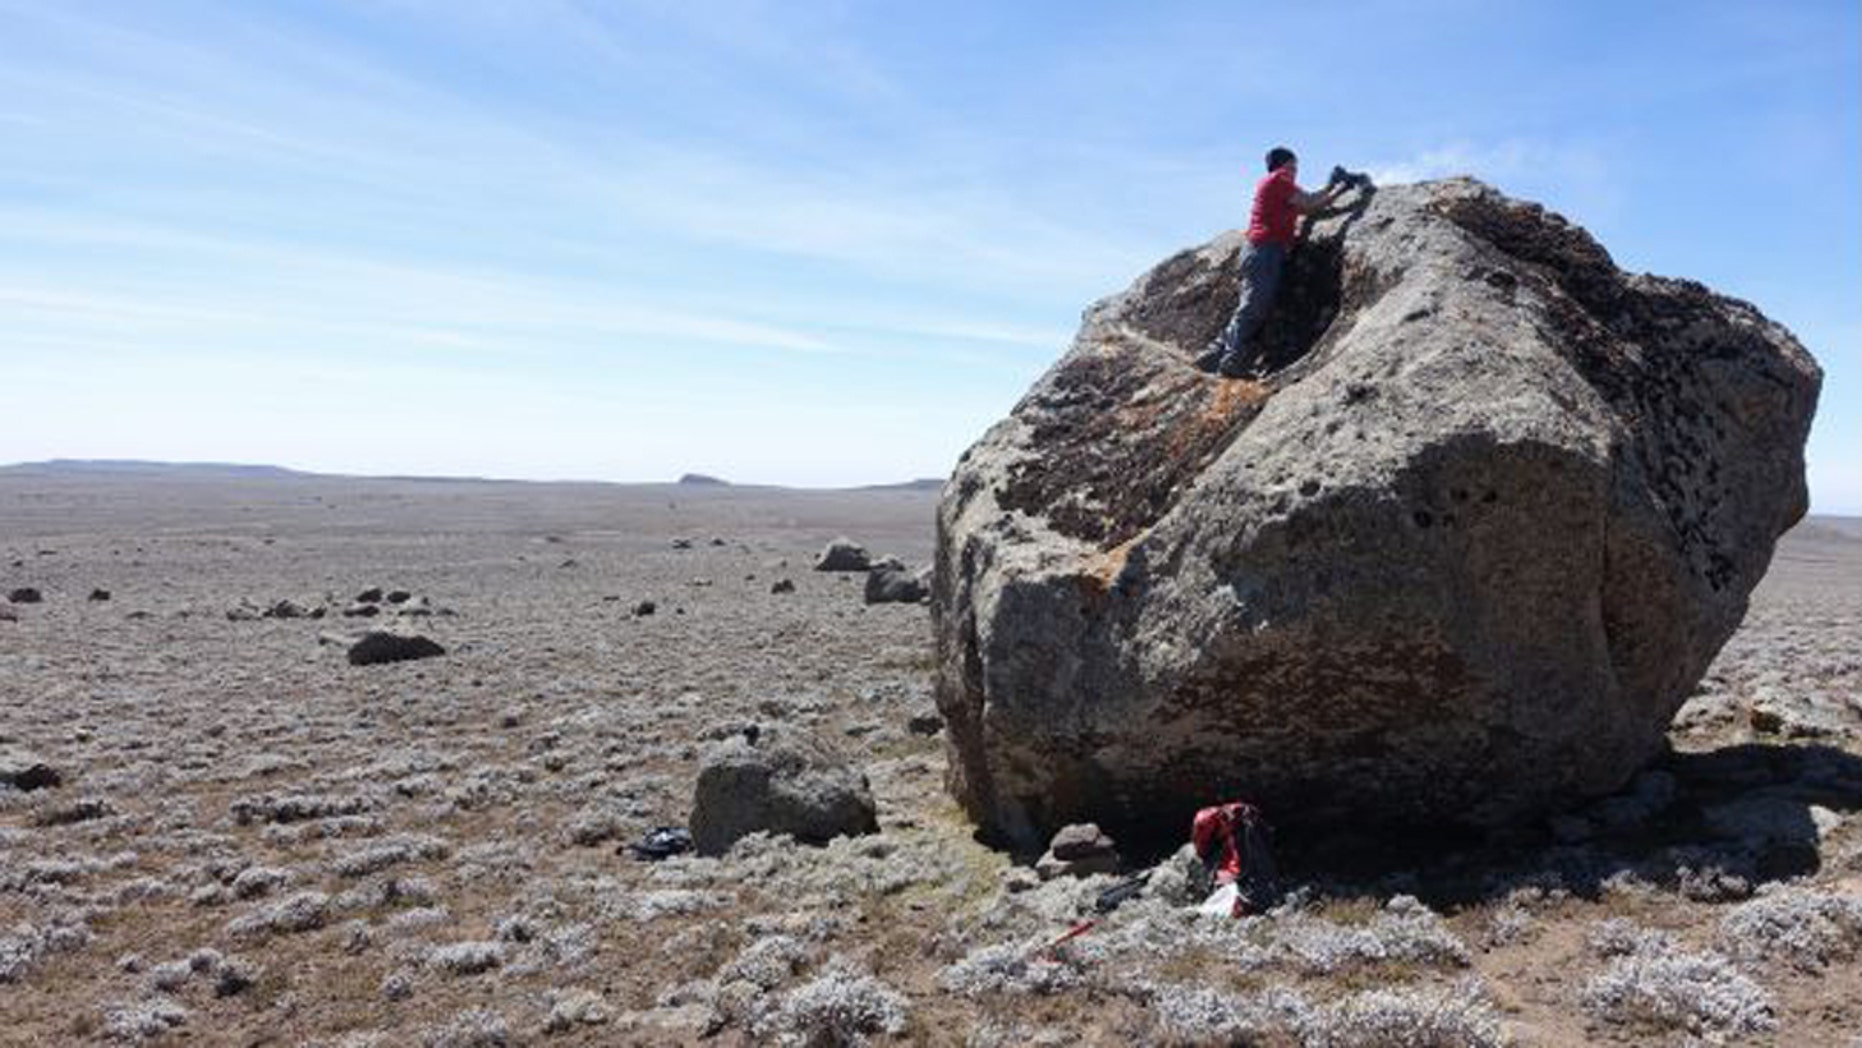 The researchers sampled erratic boulders deposited by a glacier on the central Sanetti Plateau in the Bale Mountains. Analysis of the boulders was used to figure out how long ago that glacier had advanced. (Credit: A.R. Groos)